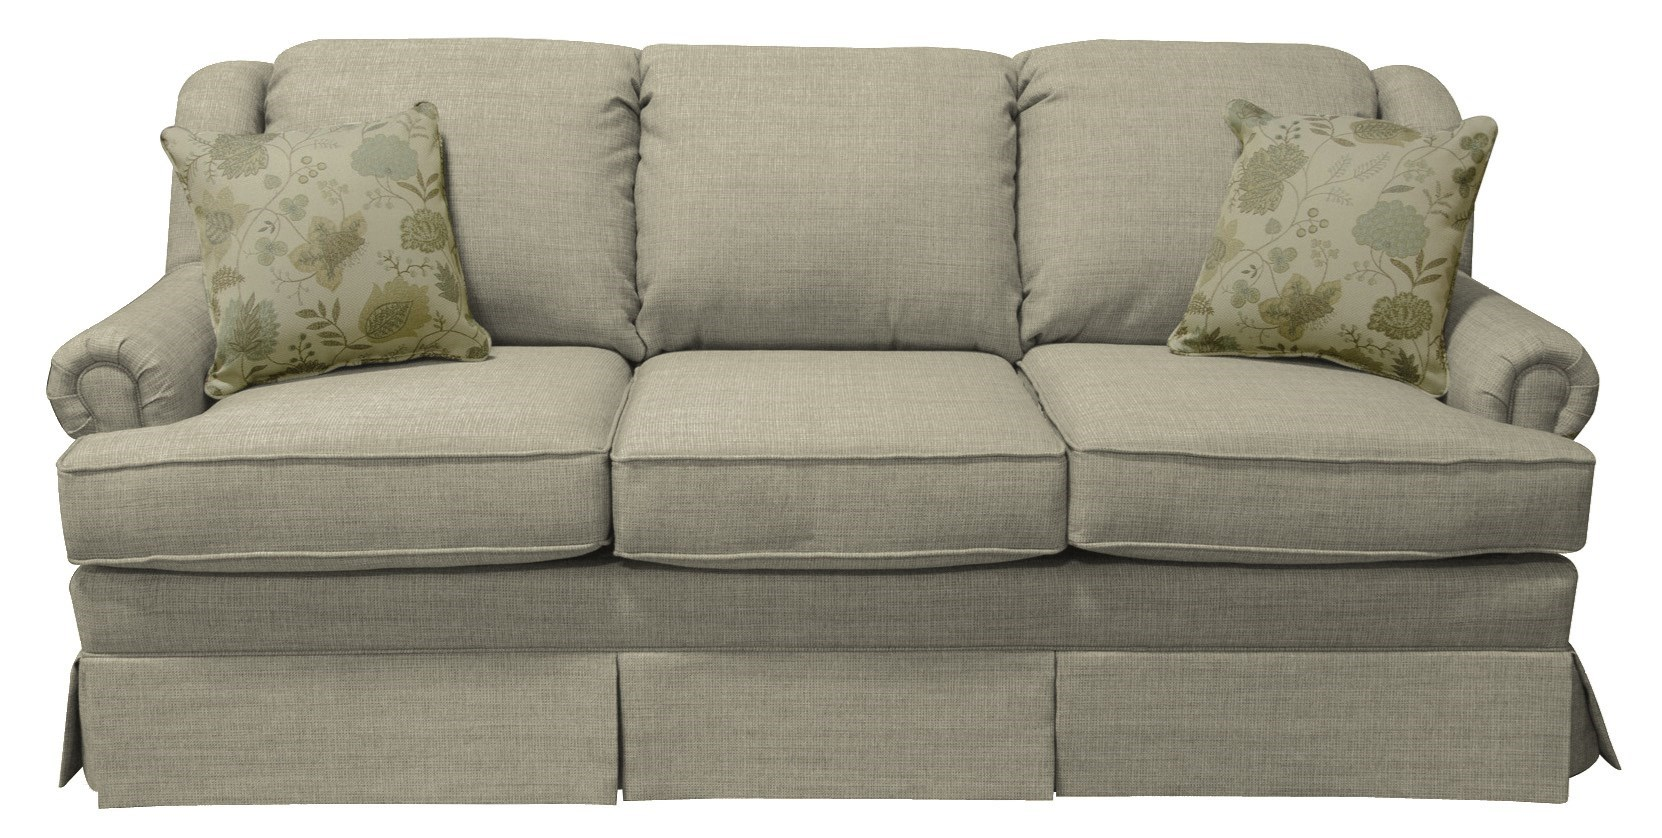 sleeper sofas queen size leather sofa sales bed full